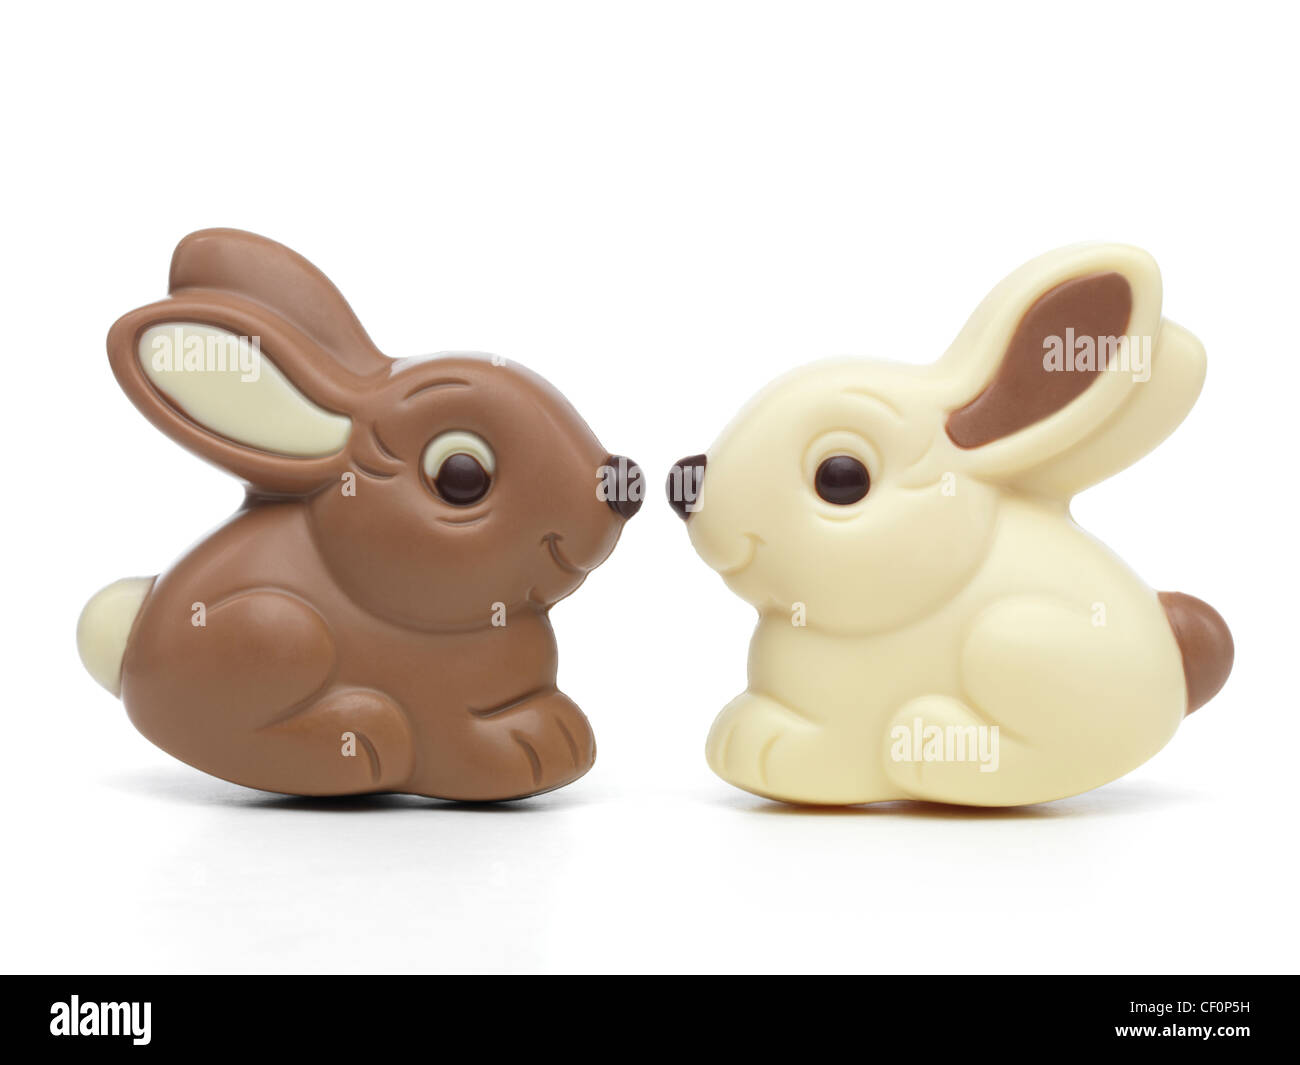 Chocolate Bunnies Stock Photos & Chocolate Bunnies Stock Images ...